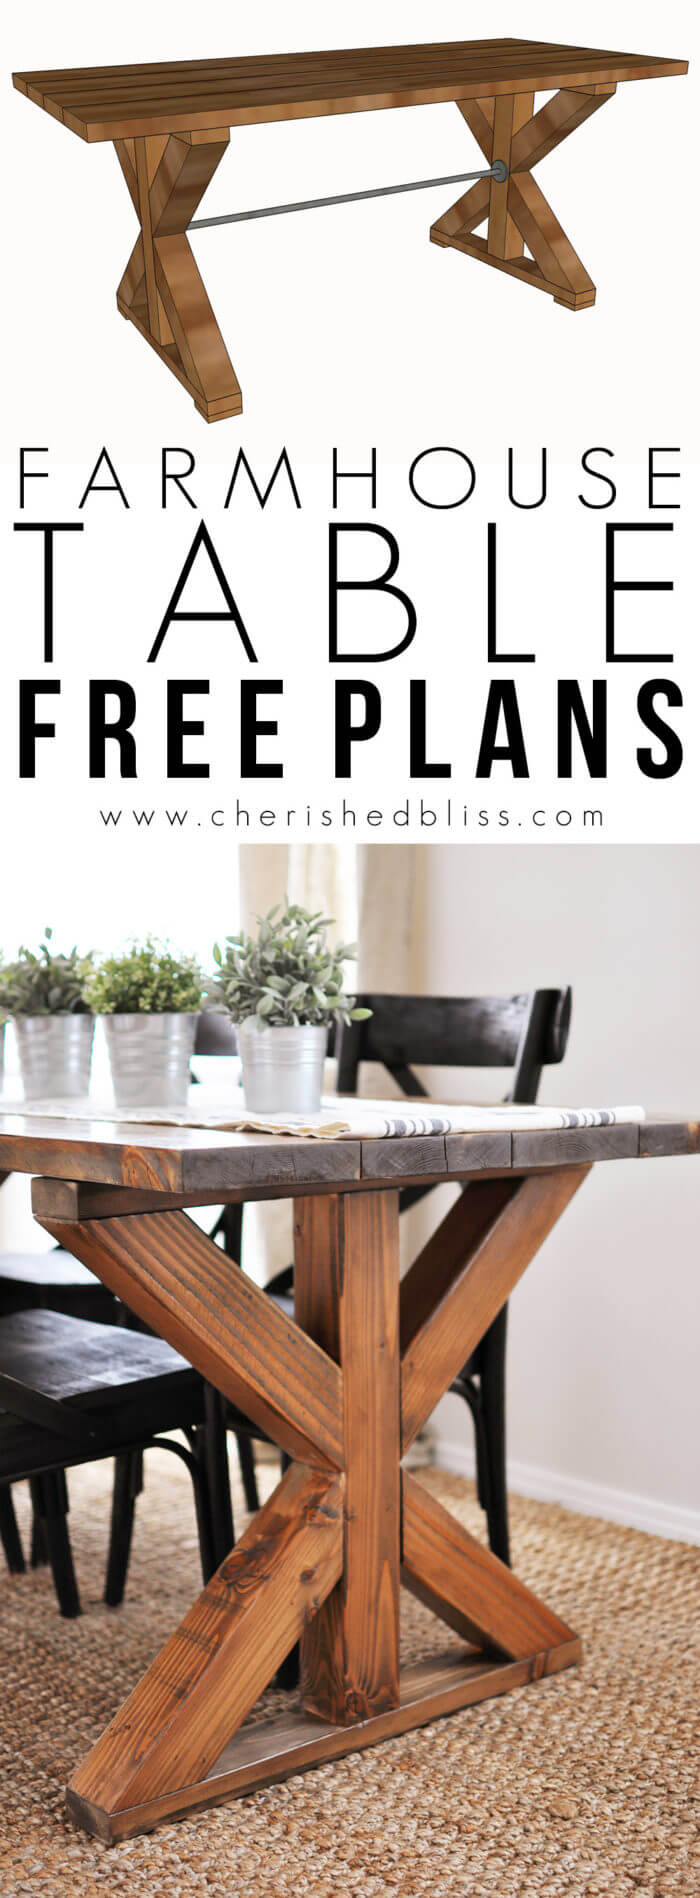 Large Dining Table - X-Farmhouse-Table-Free-Plans